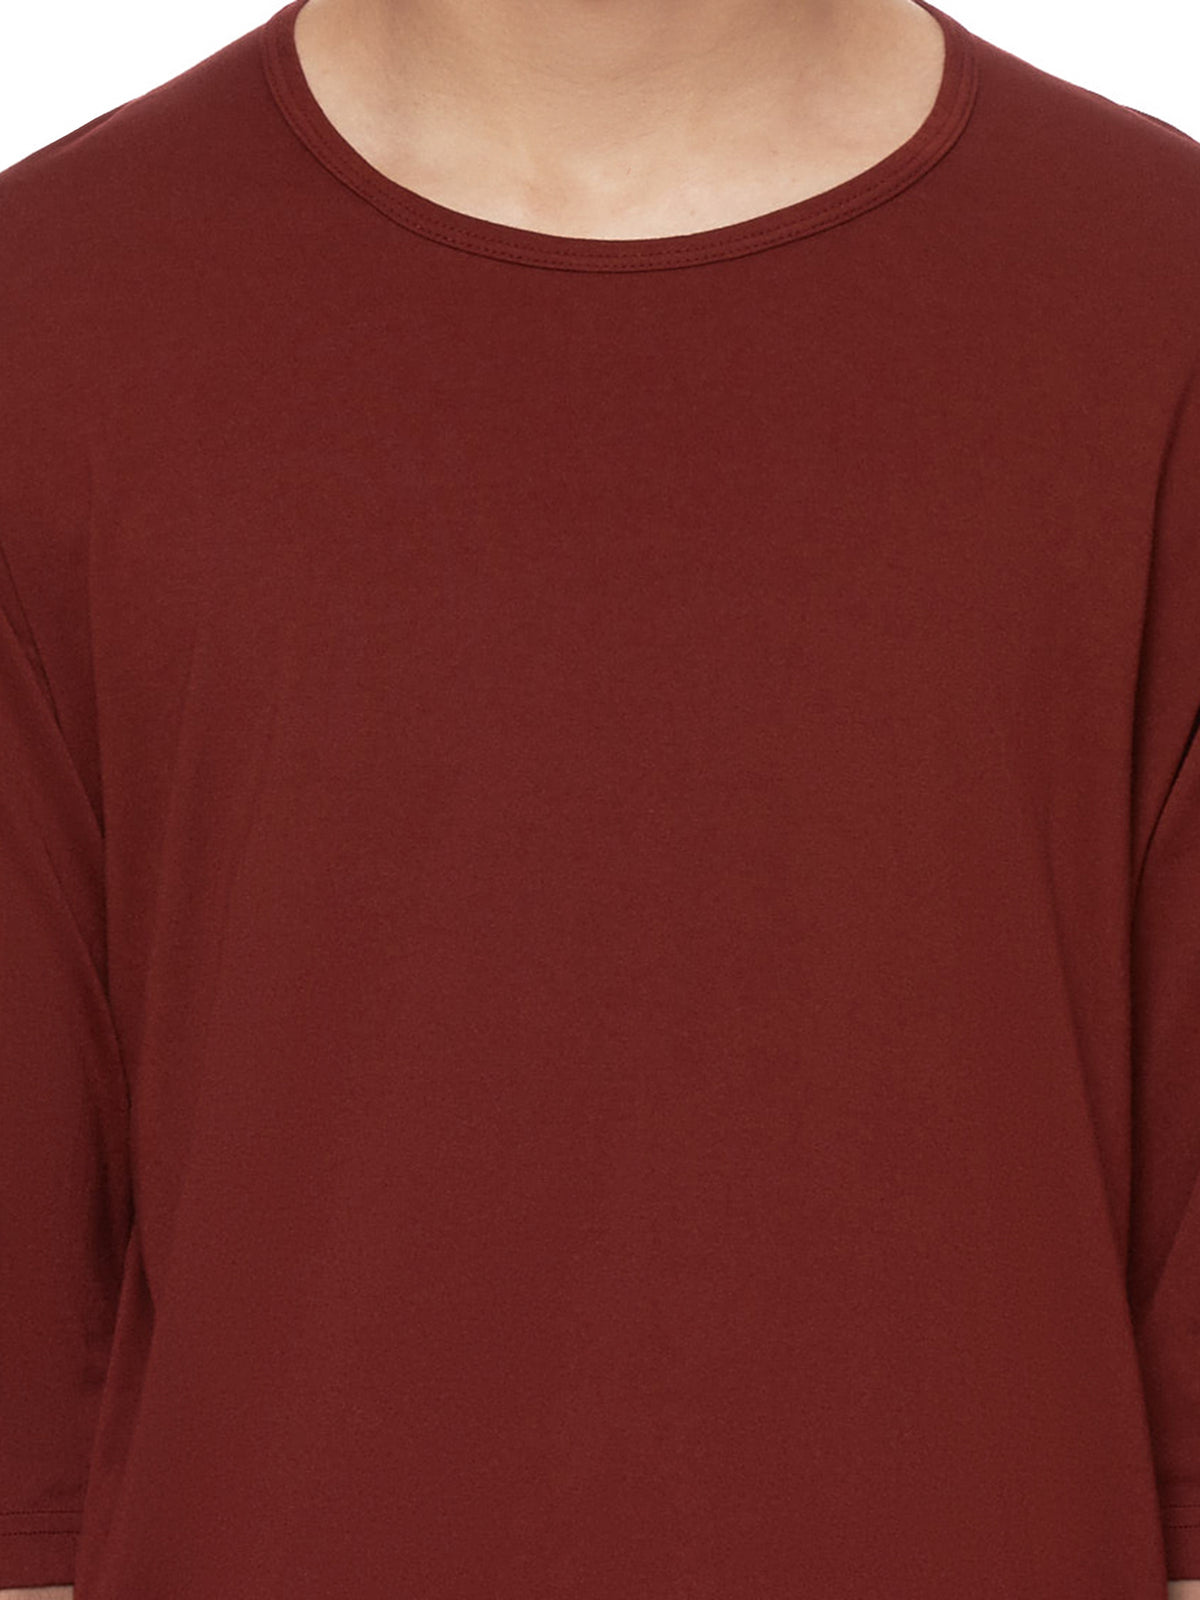 Basic T-Shirt (KJ91-014-BORDEAUX)